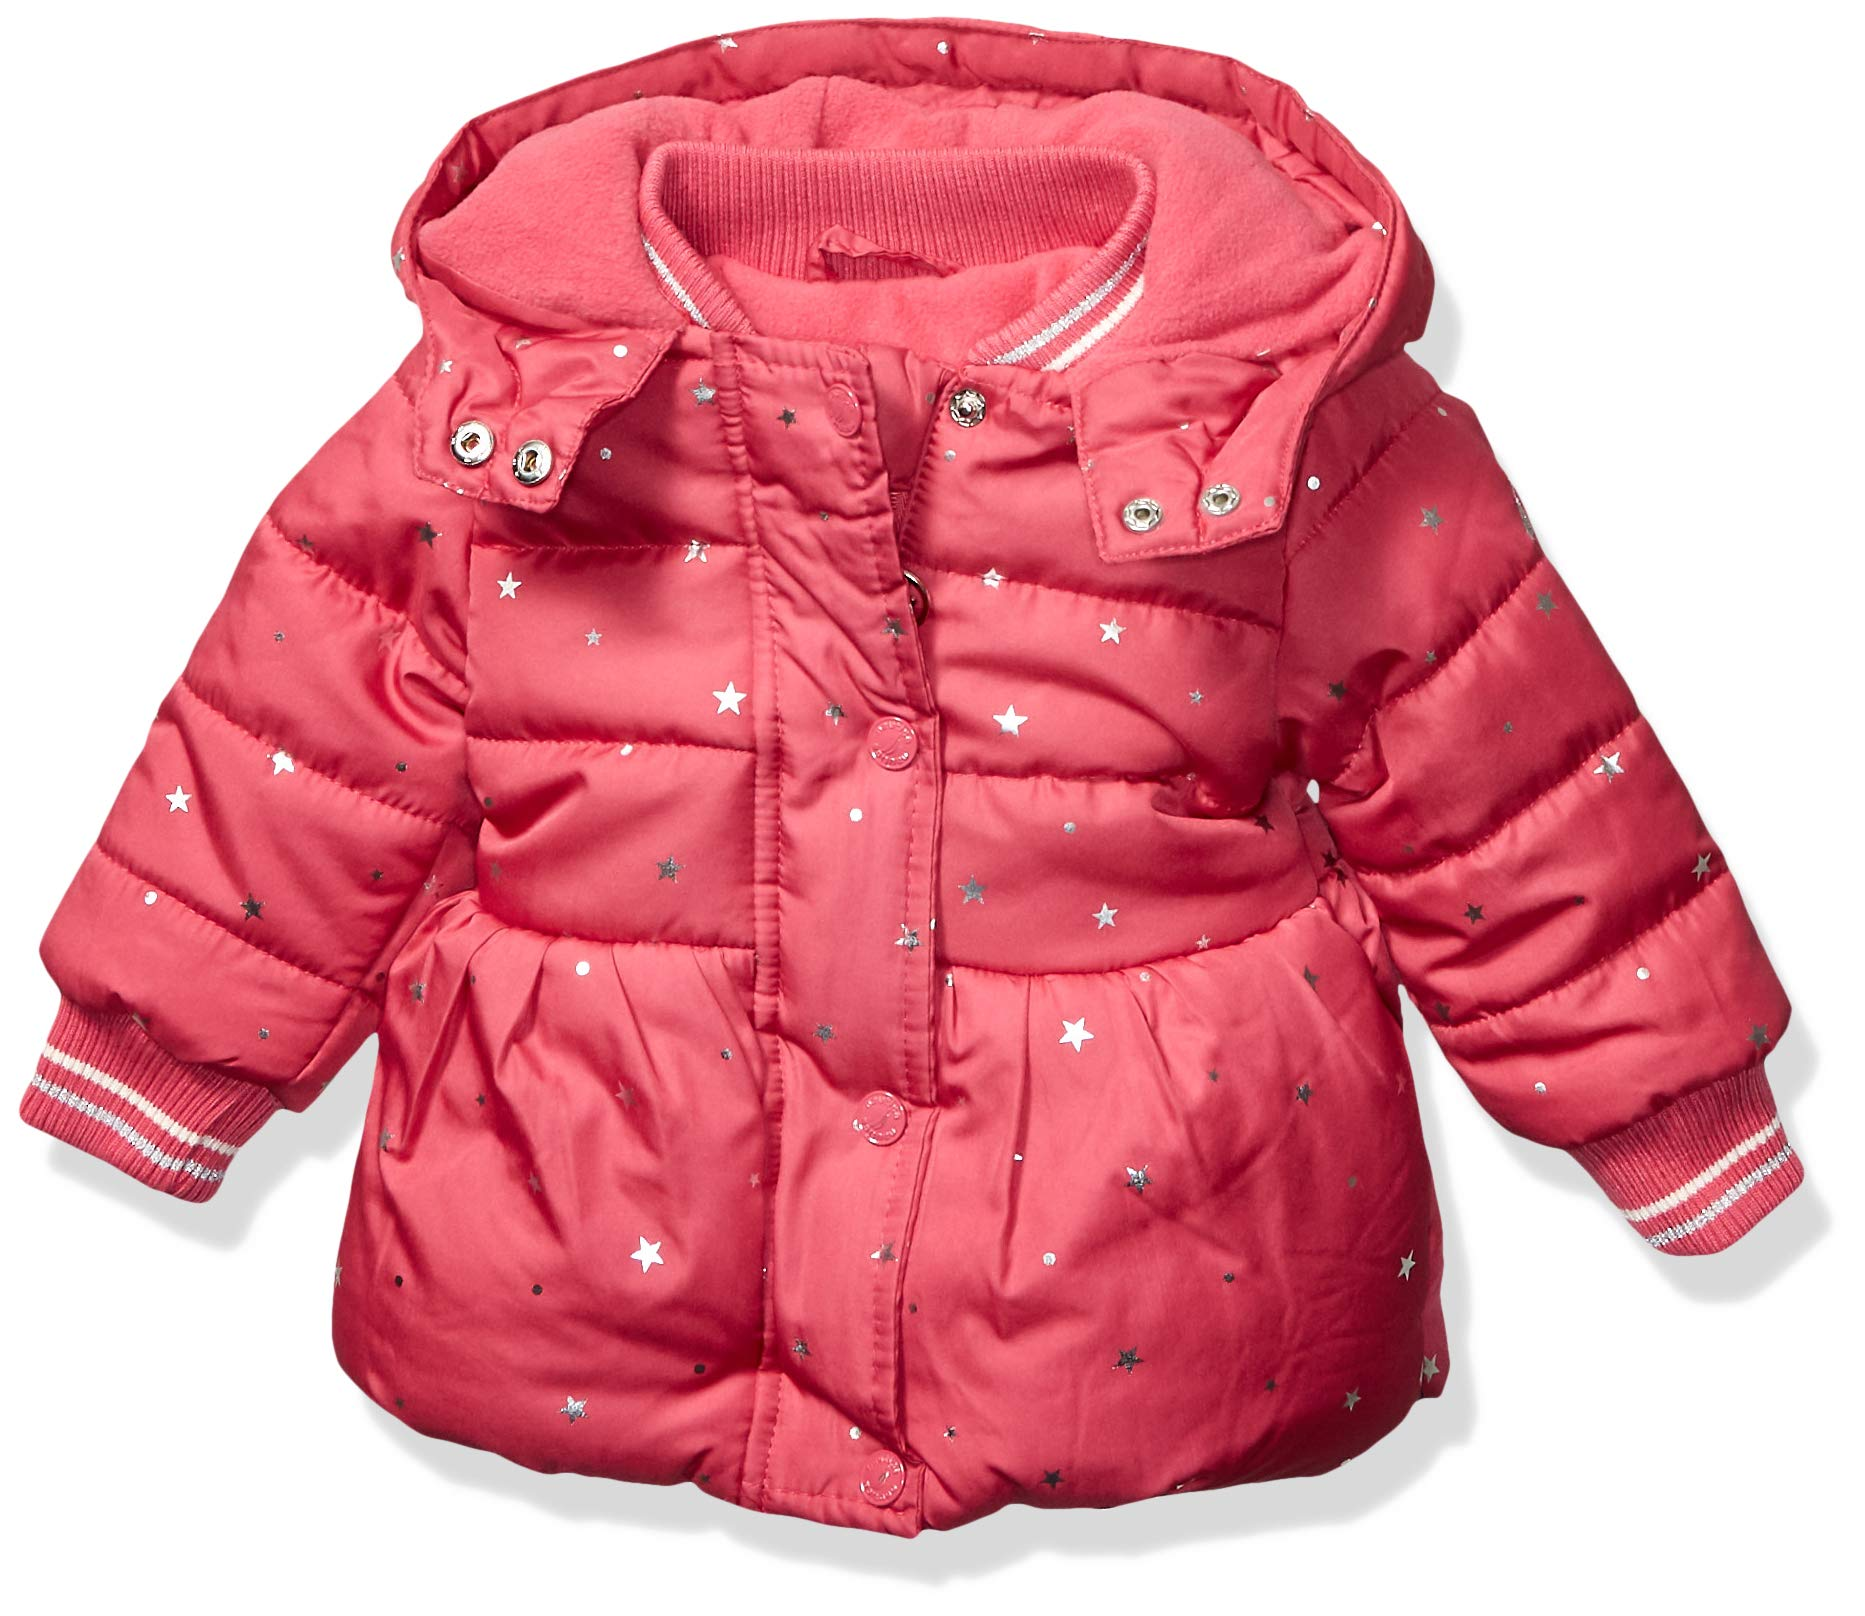 Nautica Baby Girls Printed Puffer Coat with Removable Hood, Dark Pink, 24 Months by Nautica